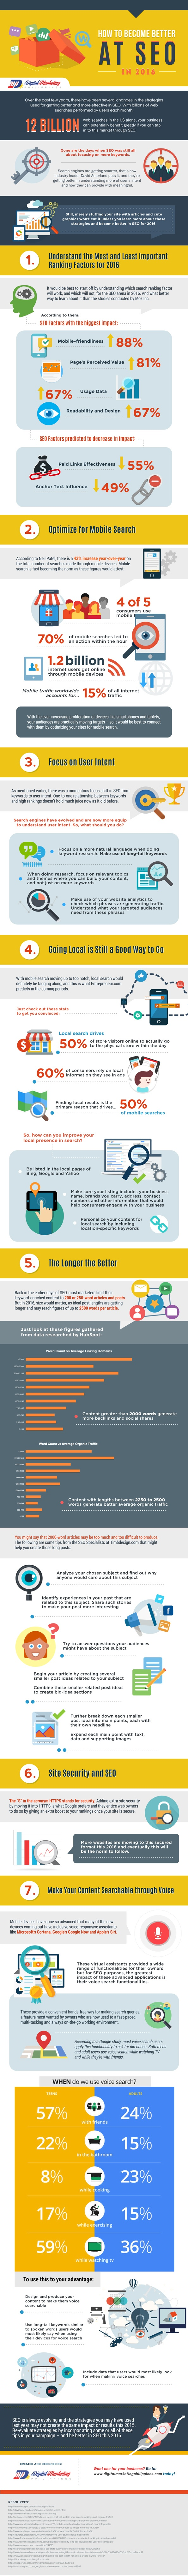 become-better-seo-infographic.jpg